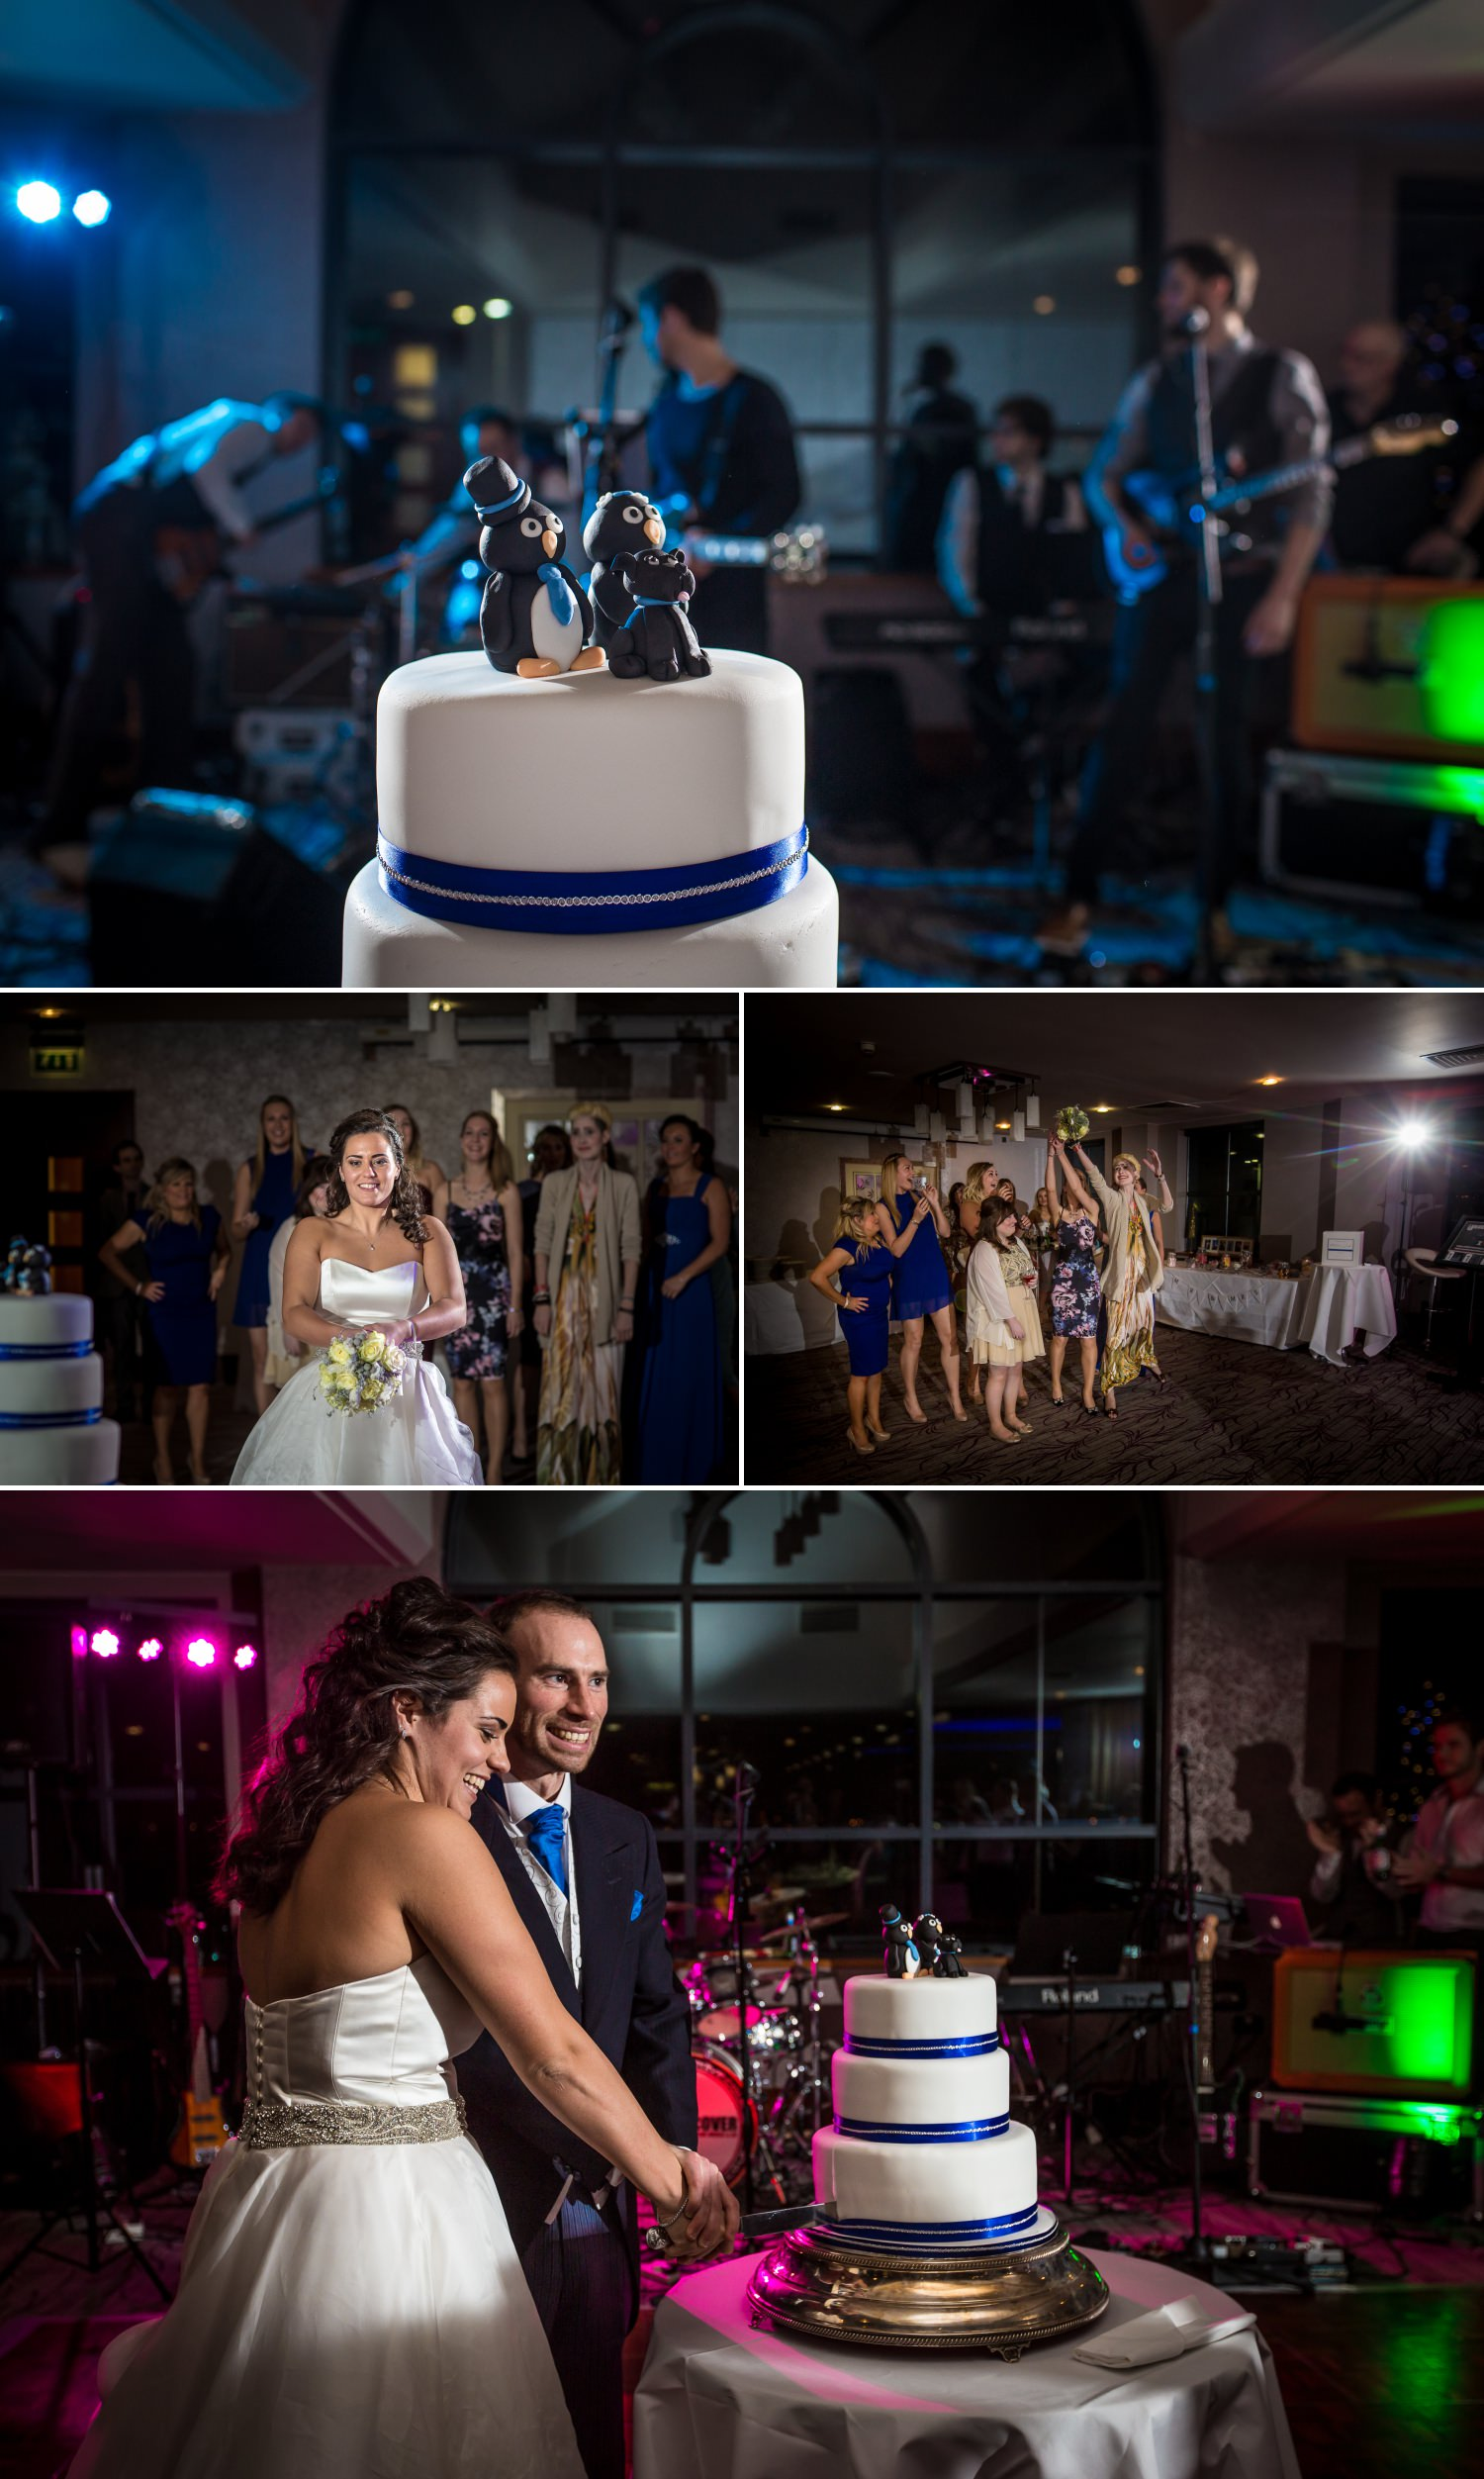 Wedding cake with penguins professional photographed by Marie Lloyd Photography, North Wales